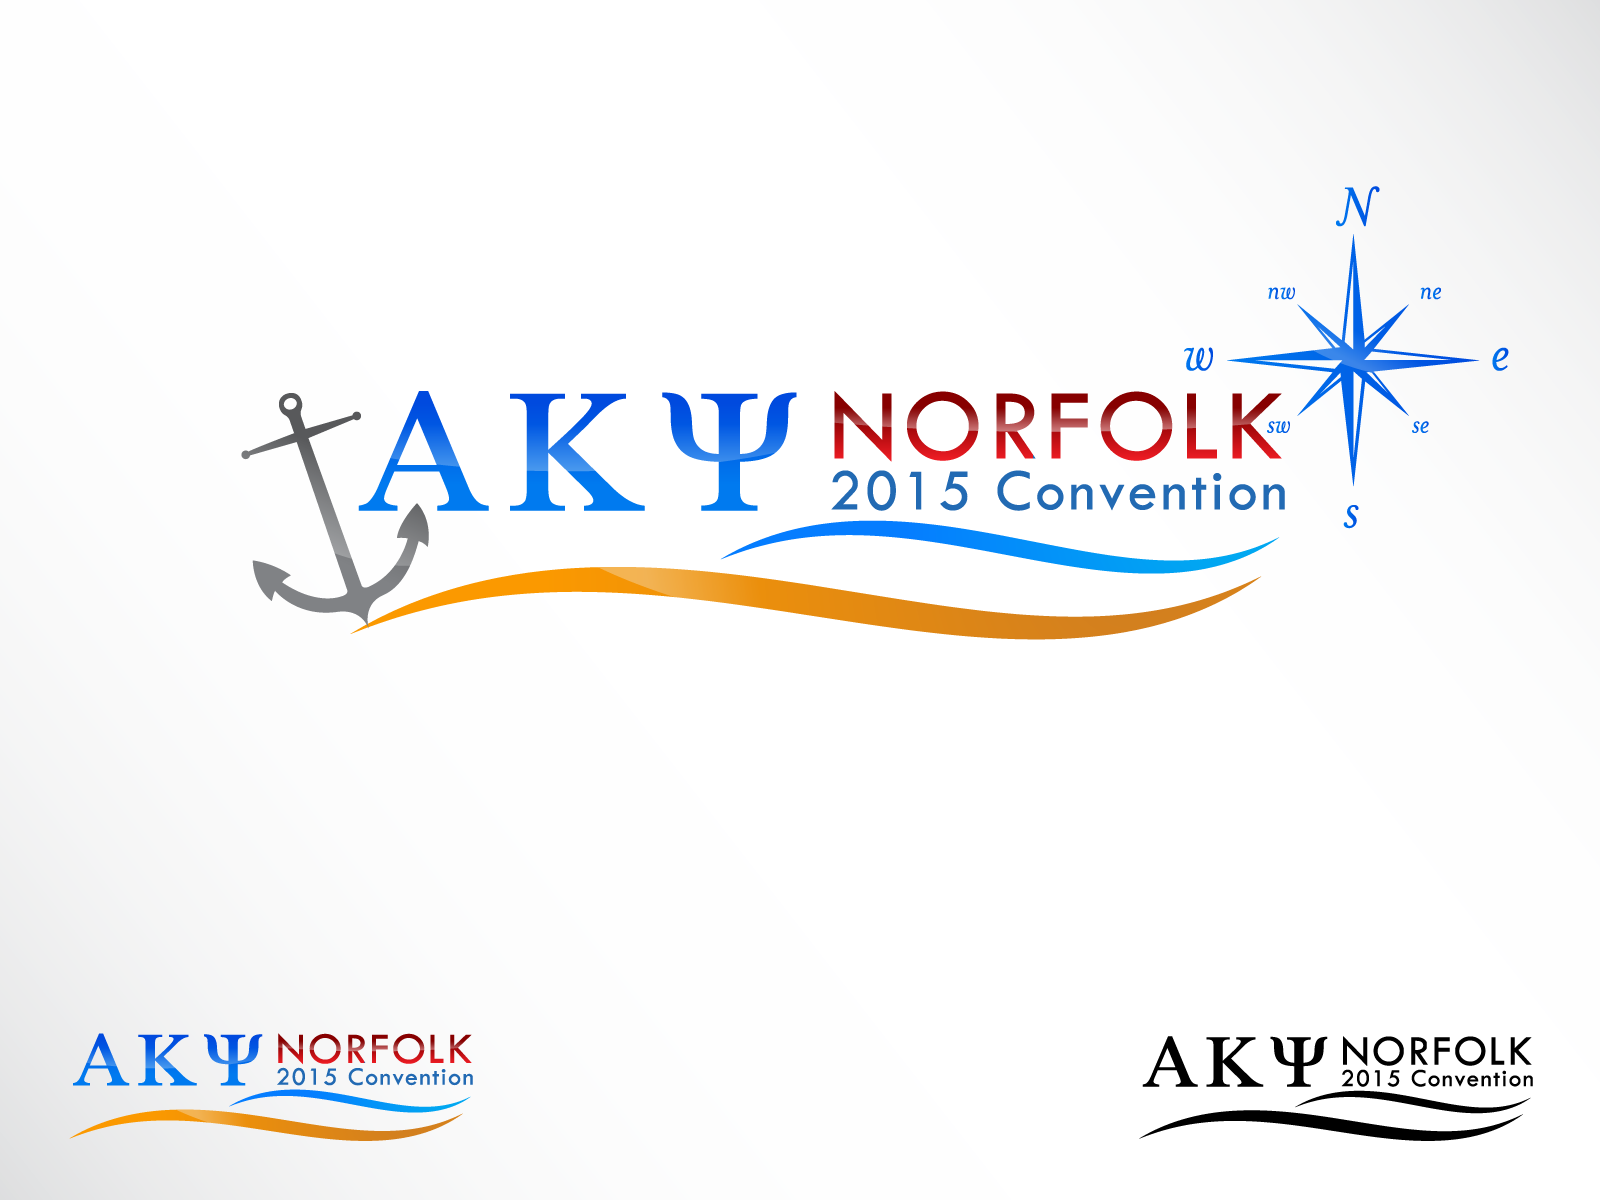 Help Alpha Kappa Psi Convention with a new logo